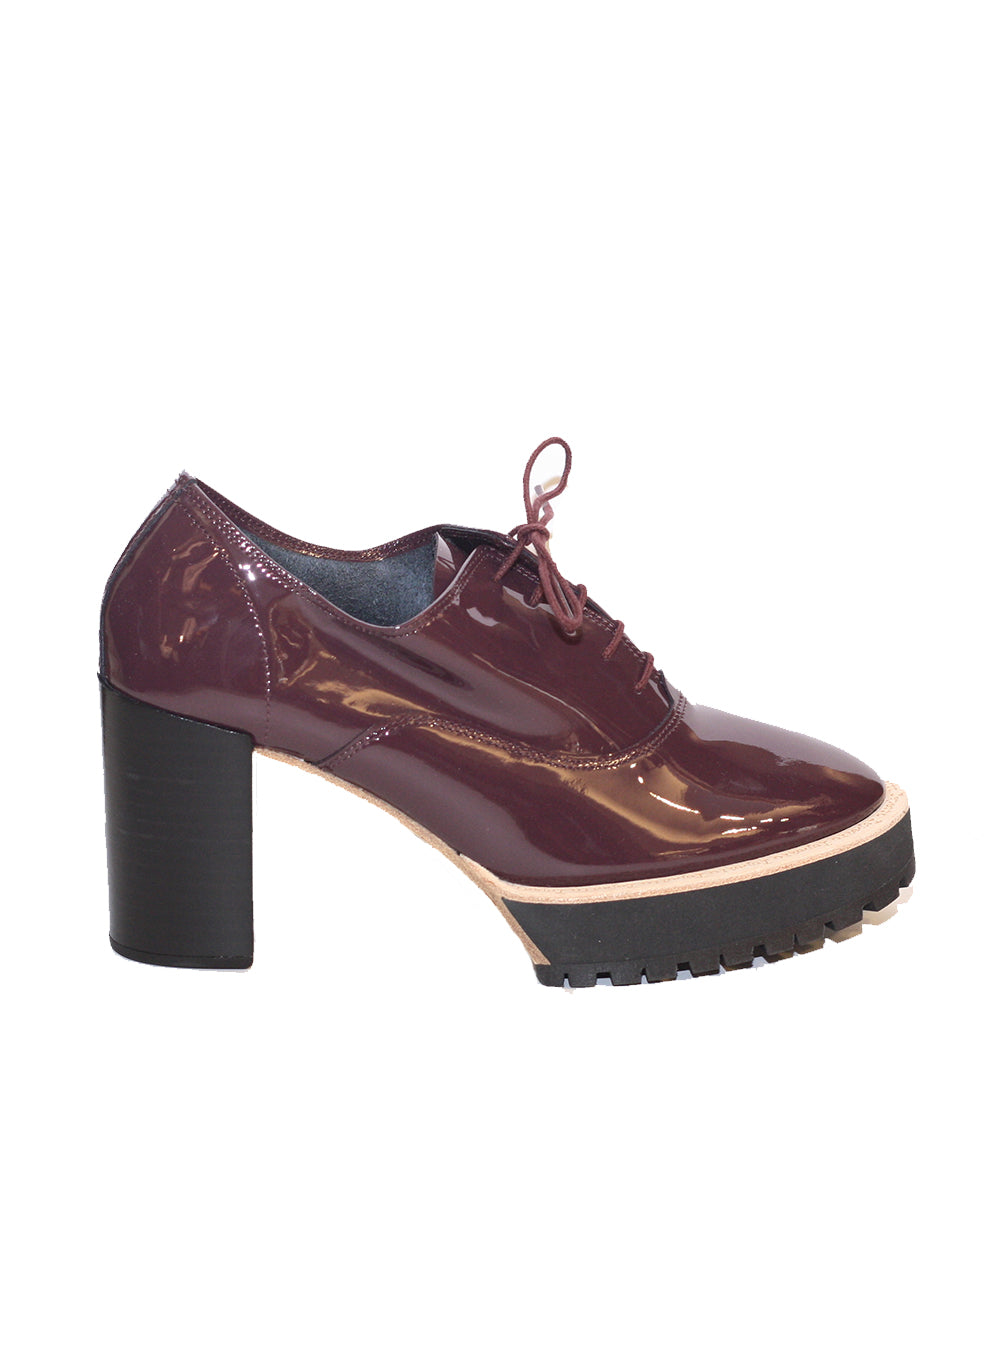 REPETTO | 'Ivan' Patent Leather Lace-Up High Heel